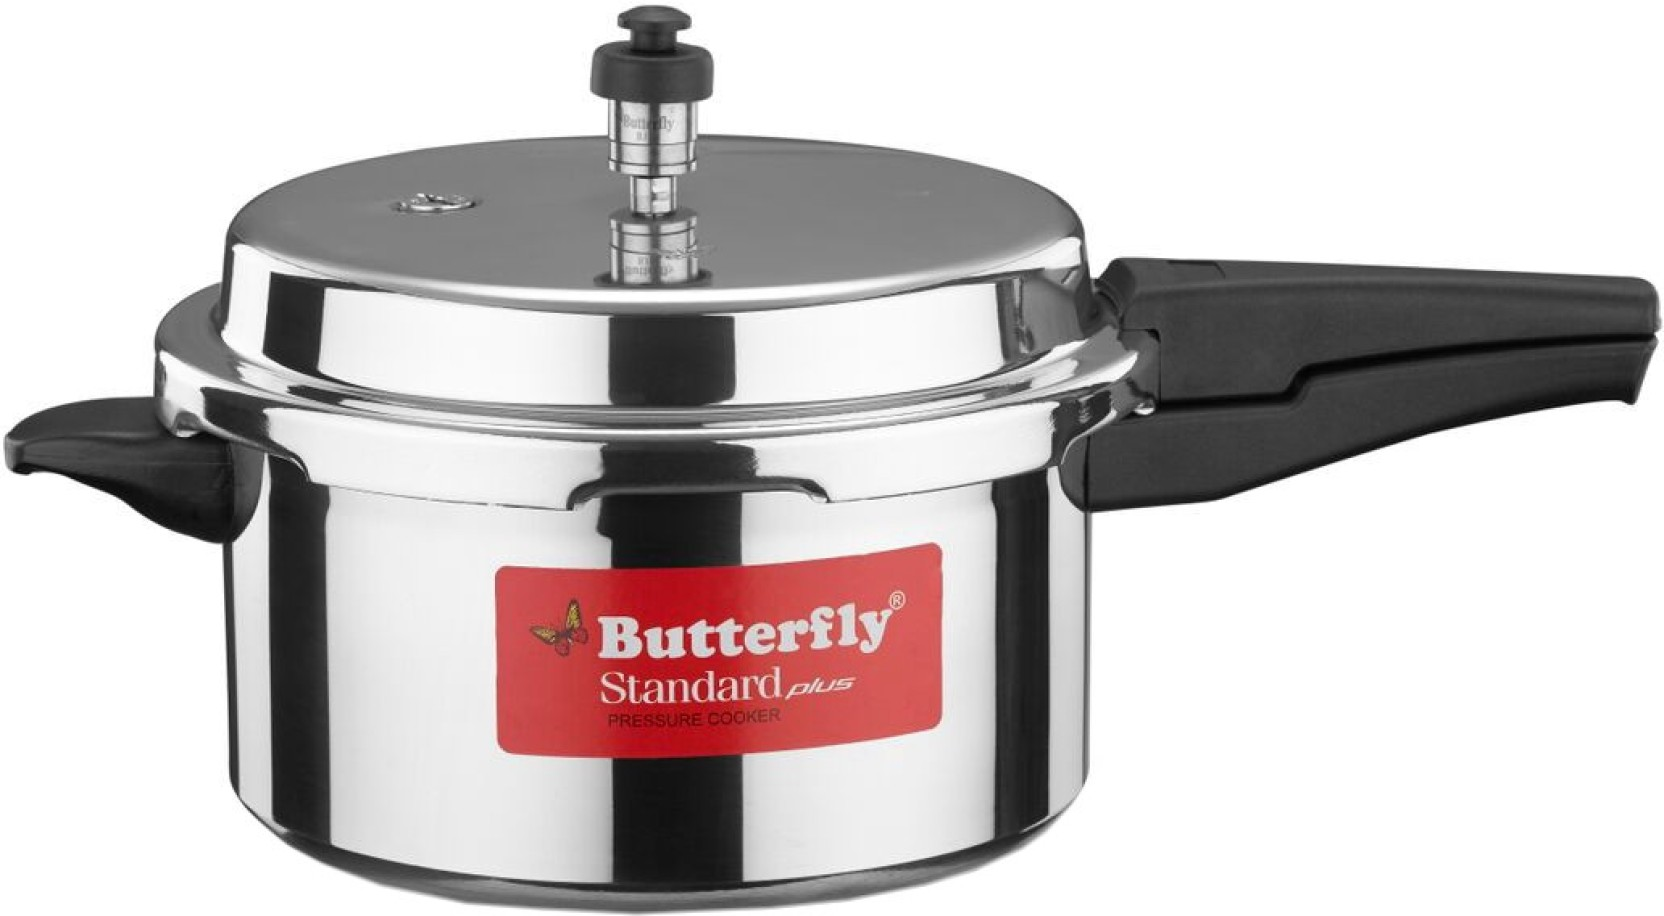 Butterfly Standard Plus 5 L Pressure Cooker With Induction Bottom Buy Circuit Boardelectric Cookerinduction Home